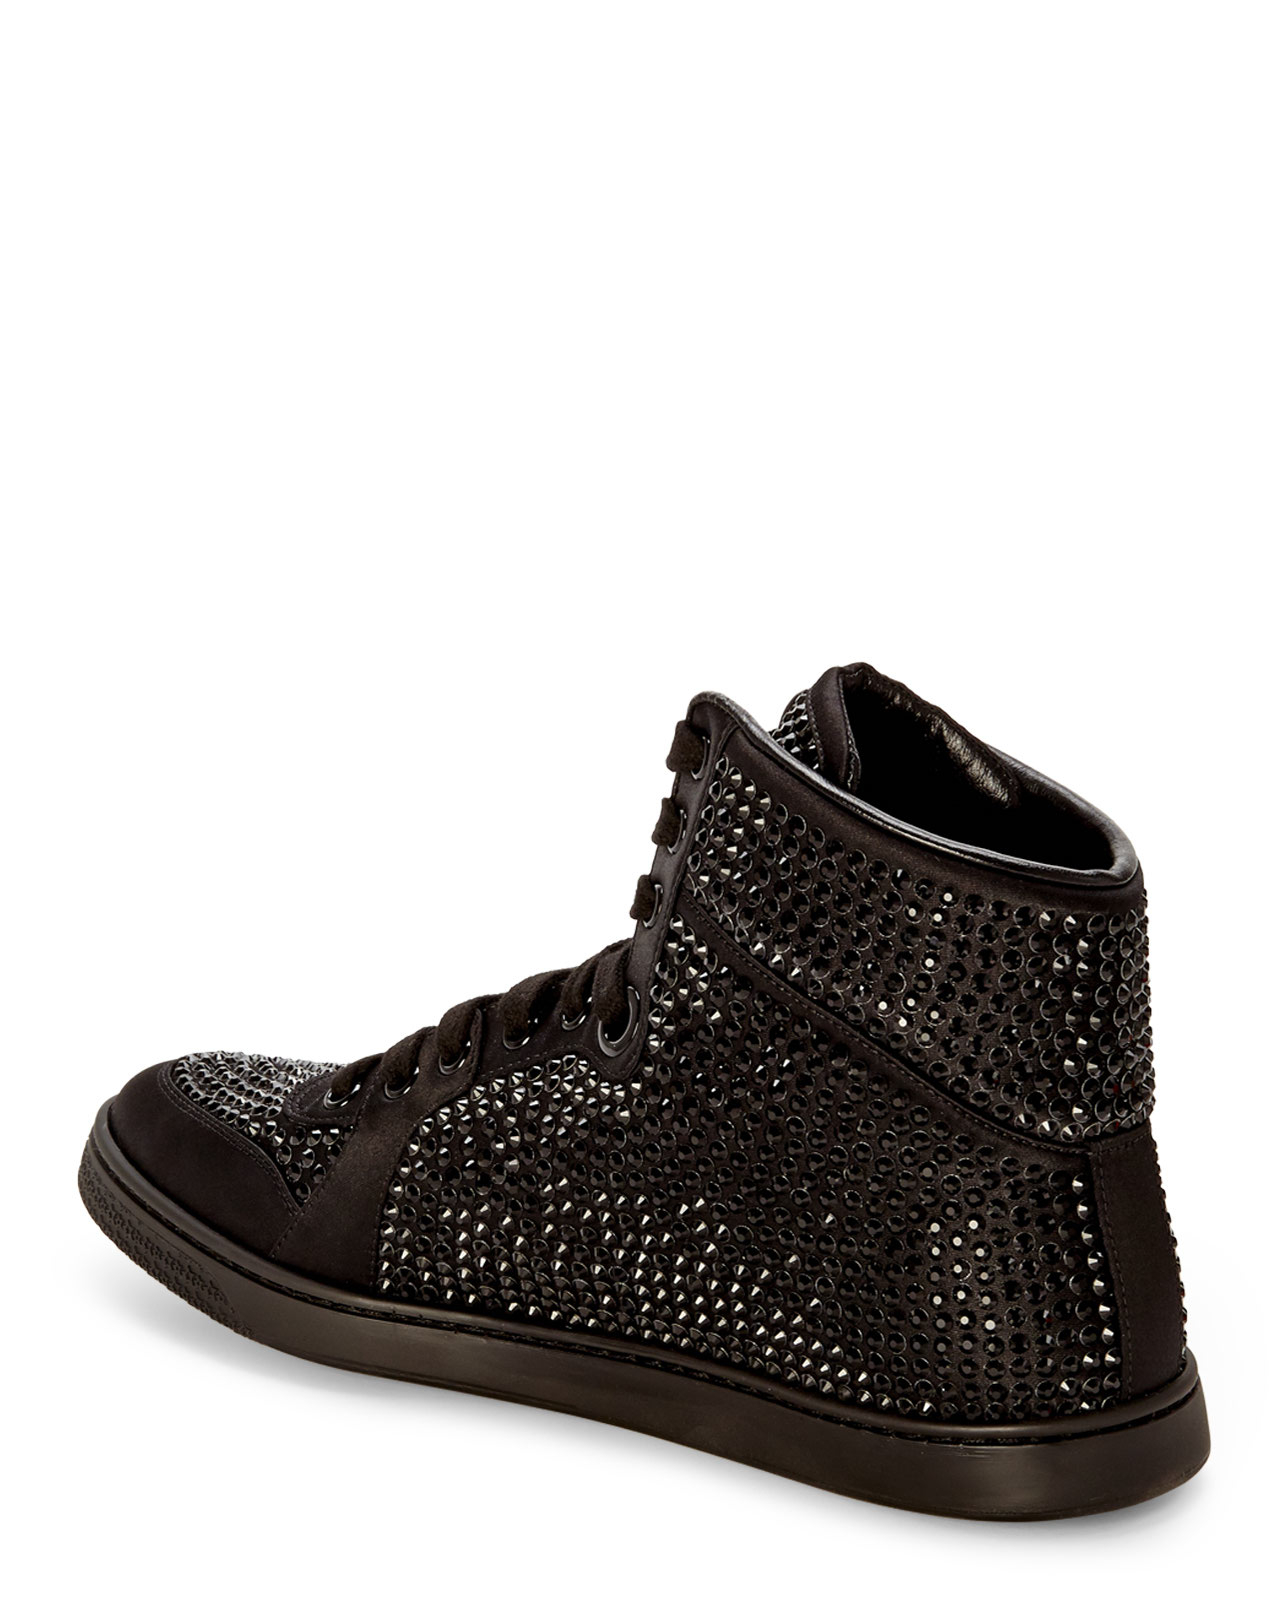 gucci black studded hightop sneakers in black lyst